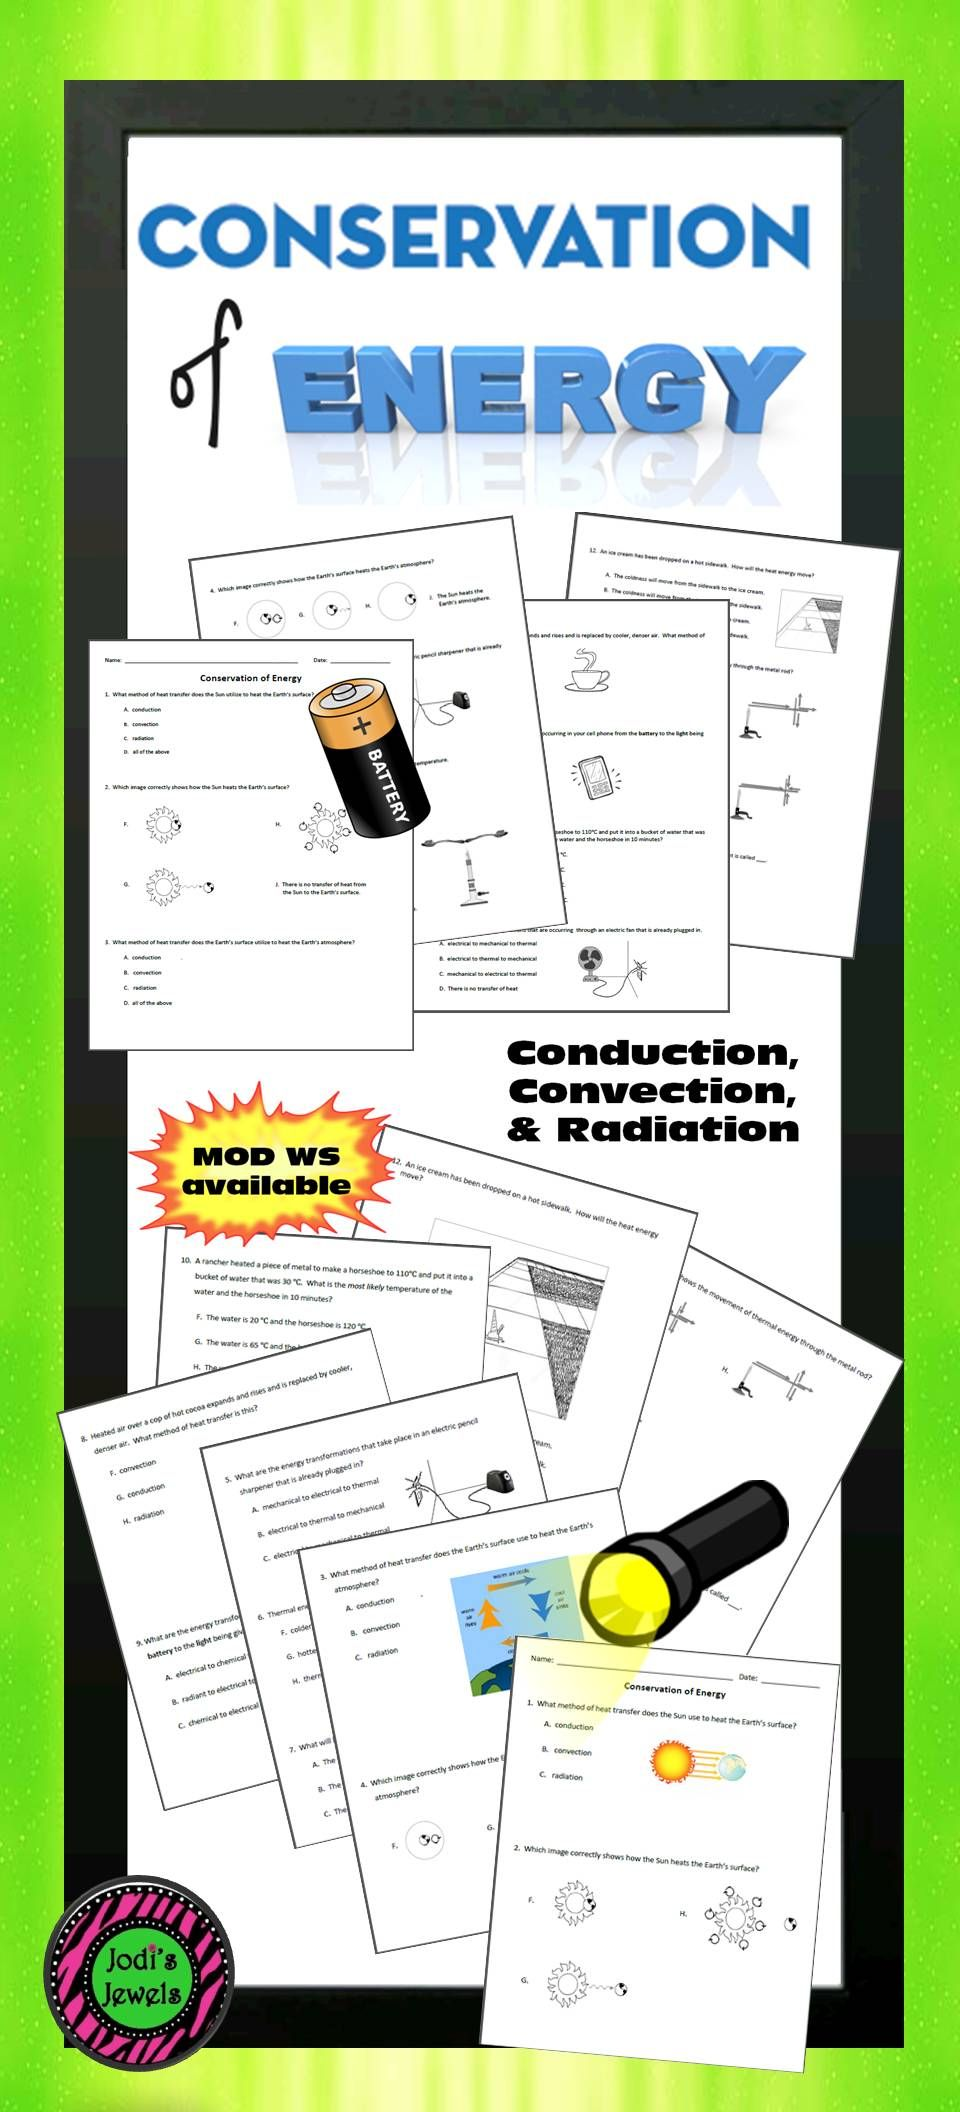 These worksheets were created for an introduction to the